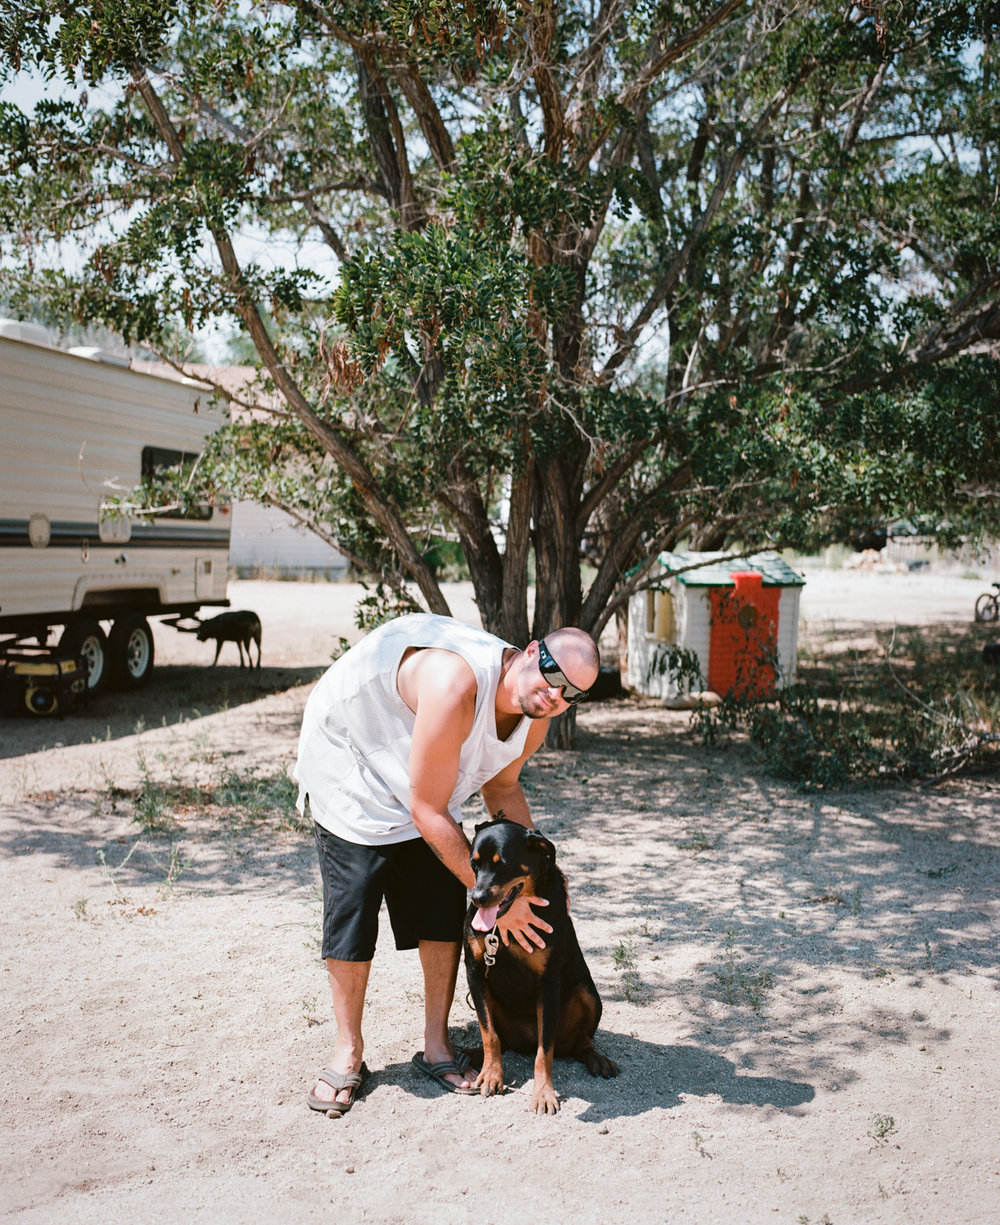 Paul and Roxie. Lone Pine, CA. August 30, 2015.